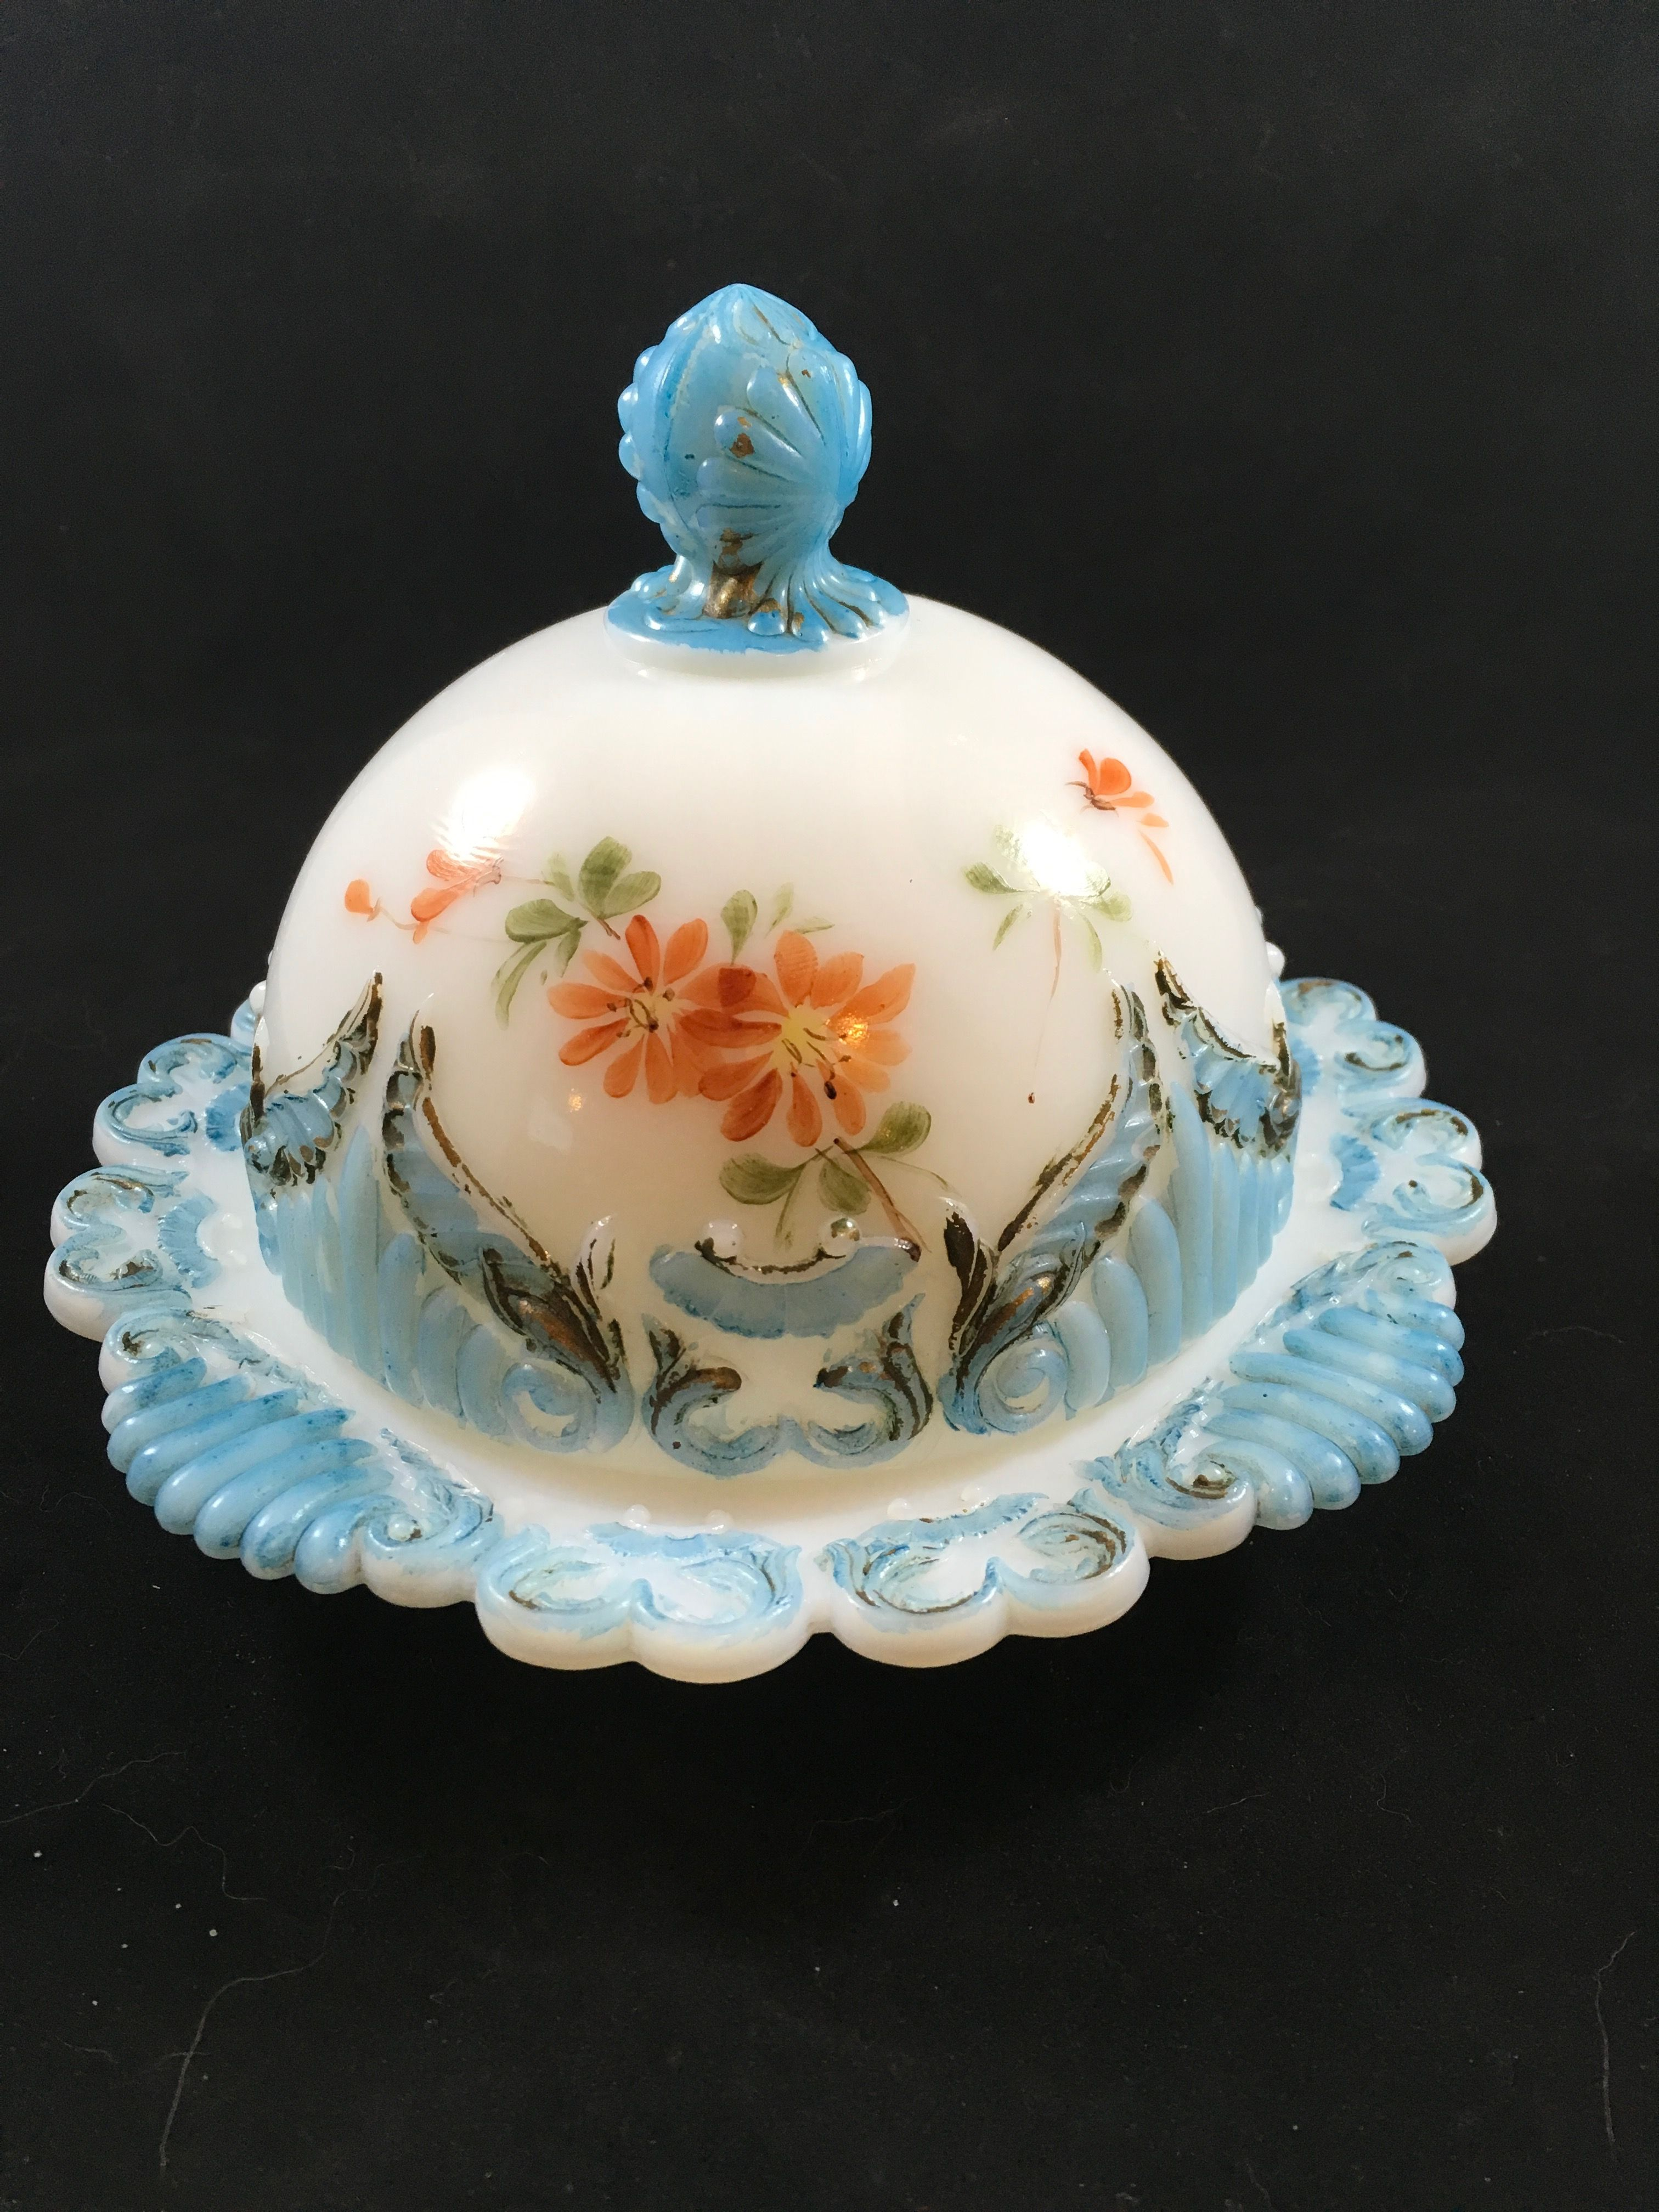 Antique Dithridge Sugar Bowl with Lid Astoria Rose Pattern 1900s Pressed Glass Hand Painted Pink